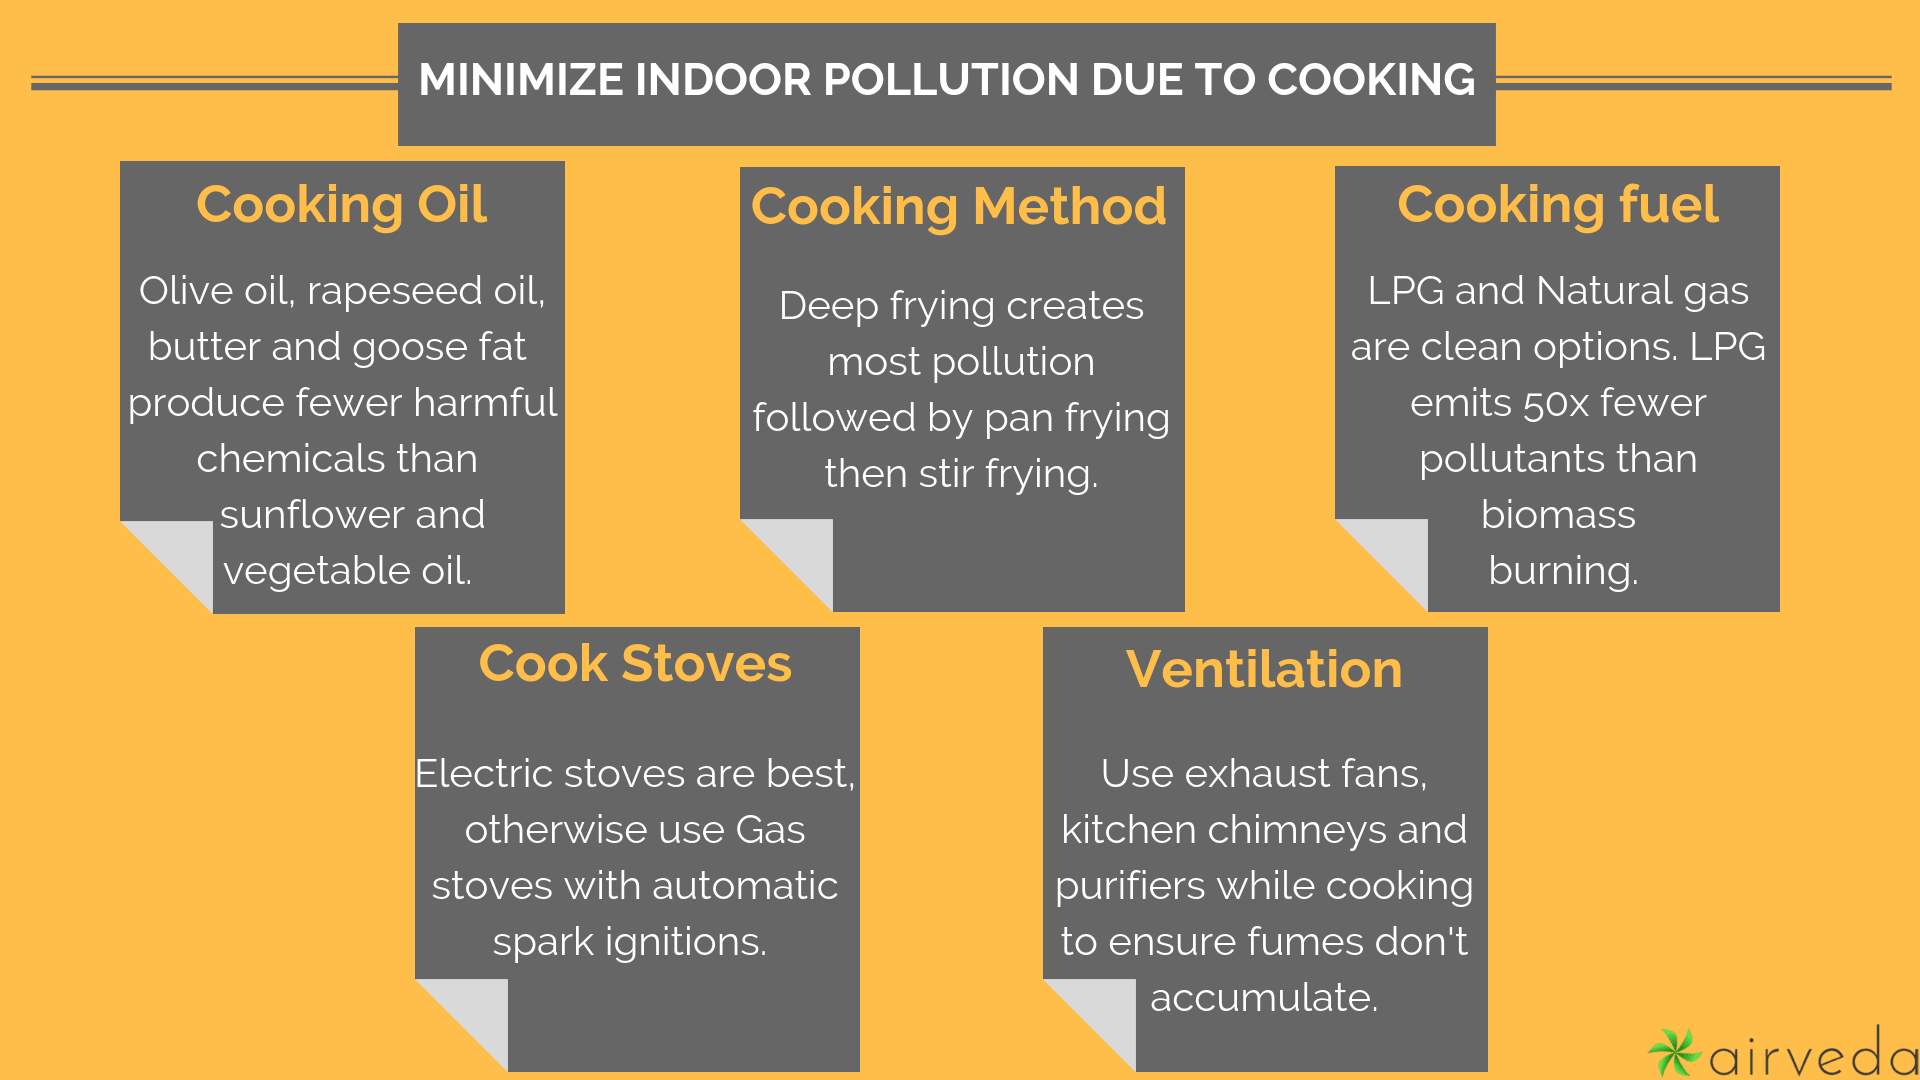 indoor pollution due to cooking